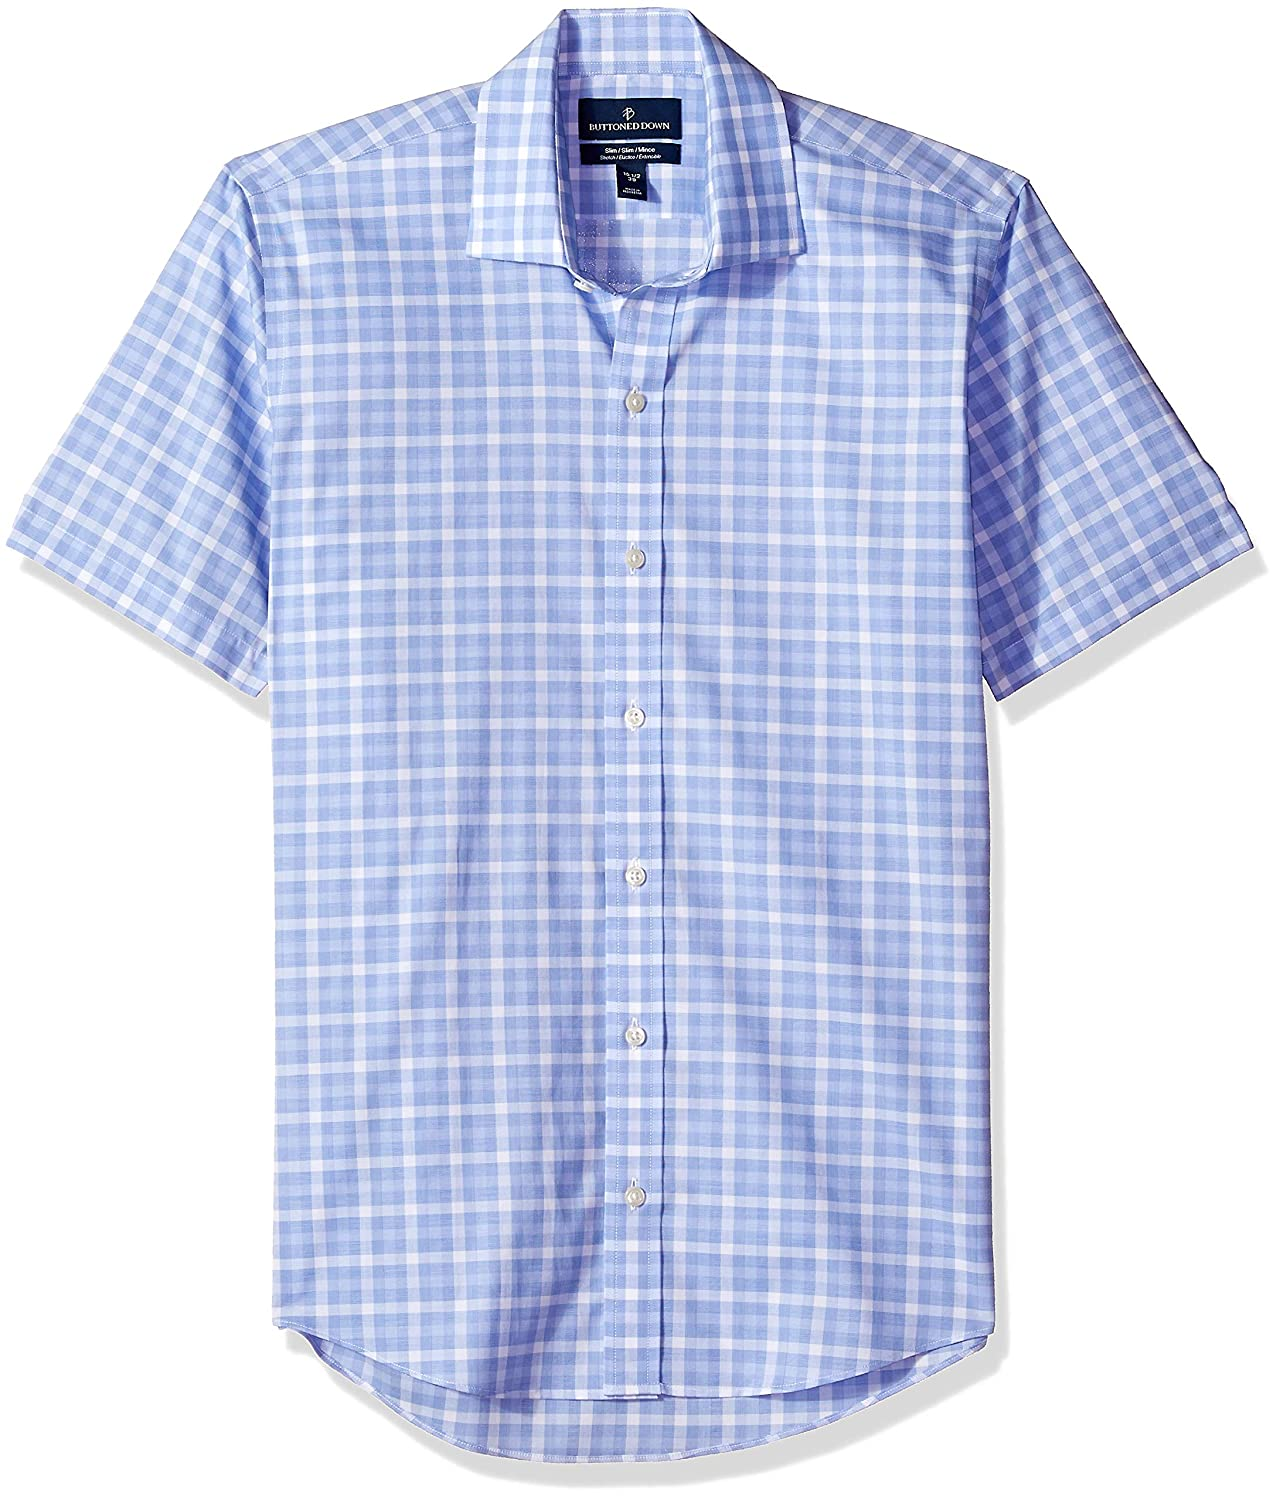 Brand BUTTONED DOWN Mens Slim Fit Spread-Collar Short-Sleeve Stretch Shirt Supima Cotton Non-Iron